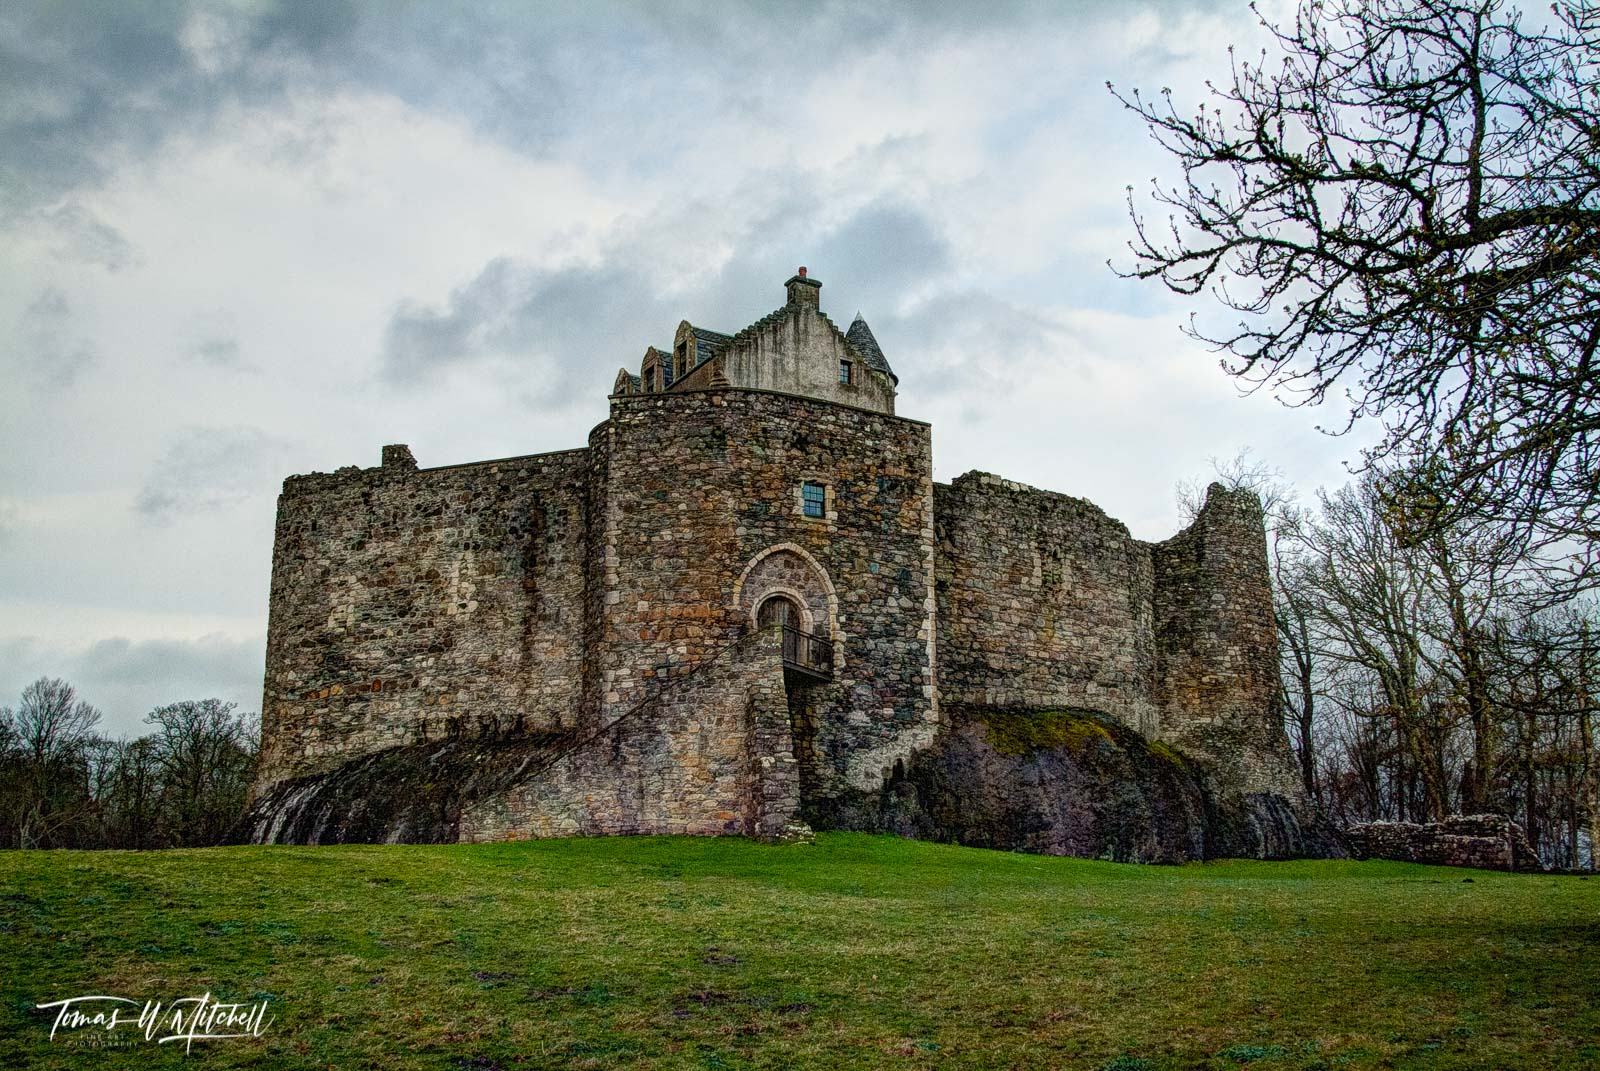 limited edition, museum grade, fine art, prints, dunstaffnage, castle, scotland, 13th century, macdougall, clan campbell, gaelic, norse, oban, loch etive, green, grass, spring, stark, trees, cloudy, photo